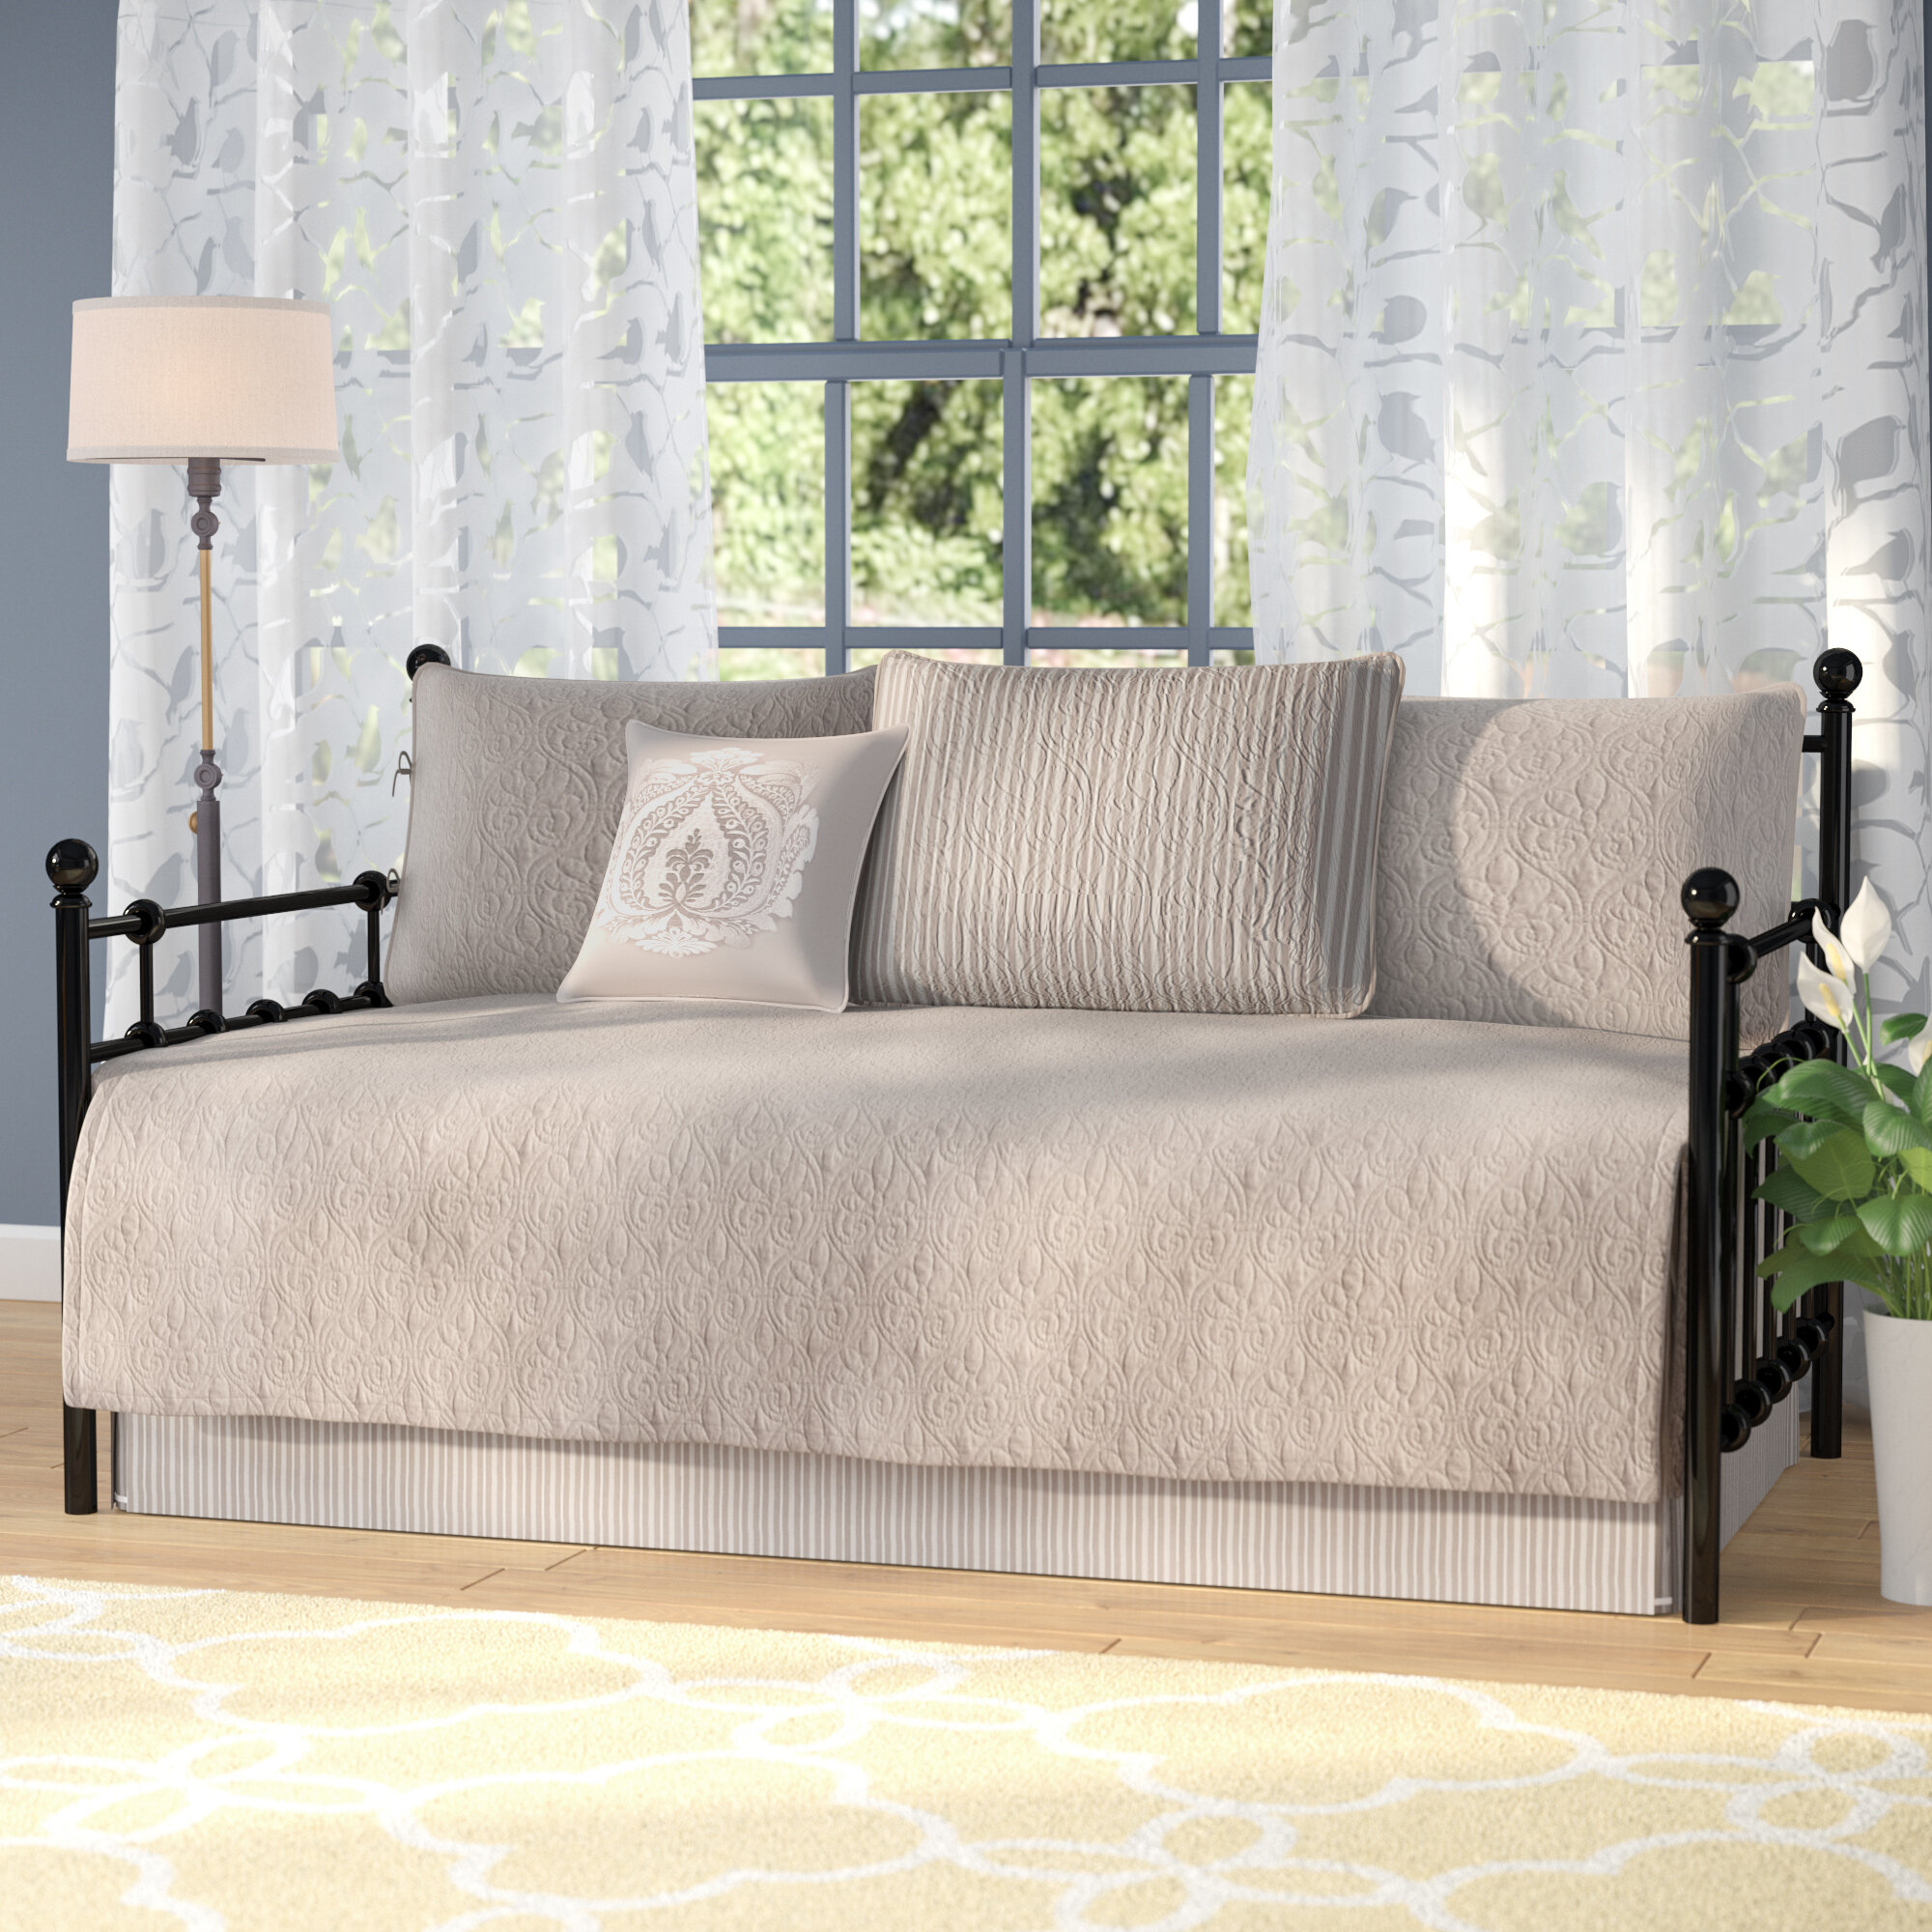 - The Twillery Co. Epping Reversible Daybed Cover Set & Reviews